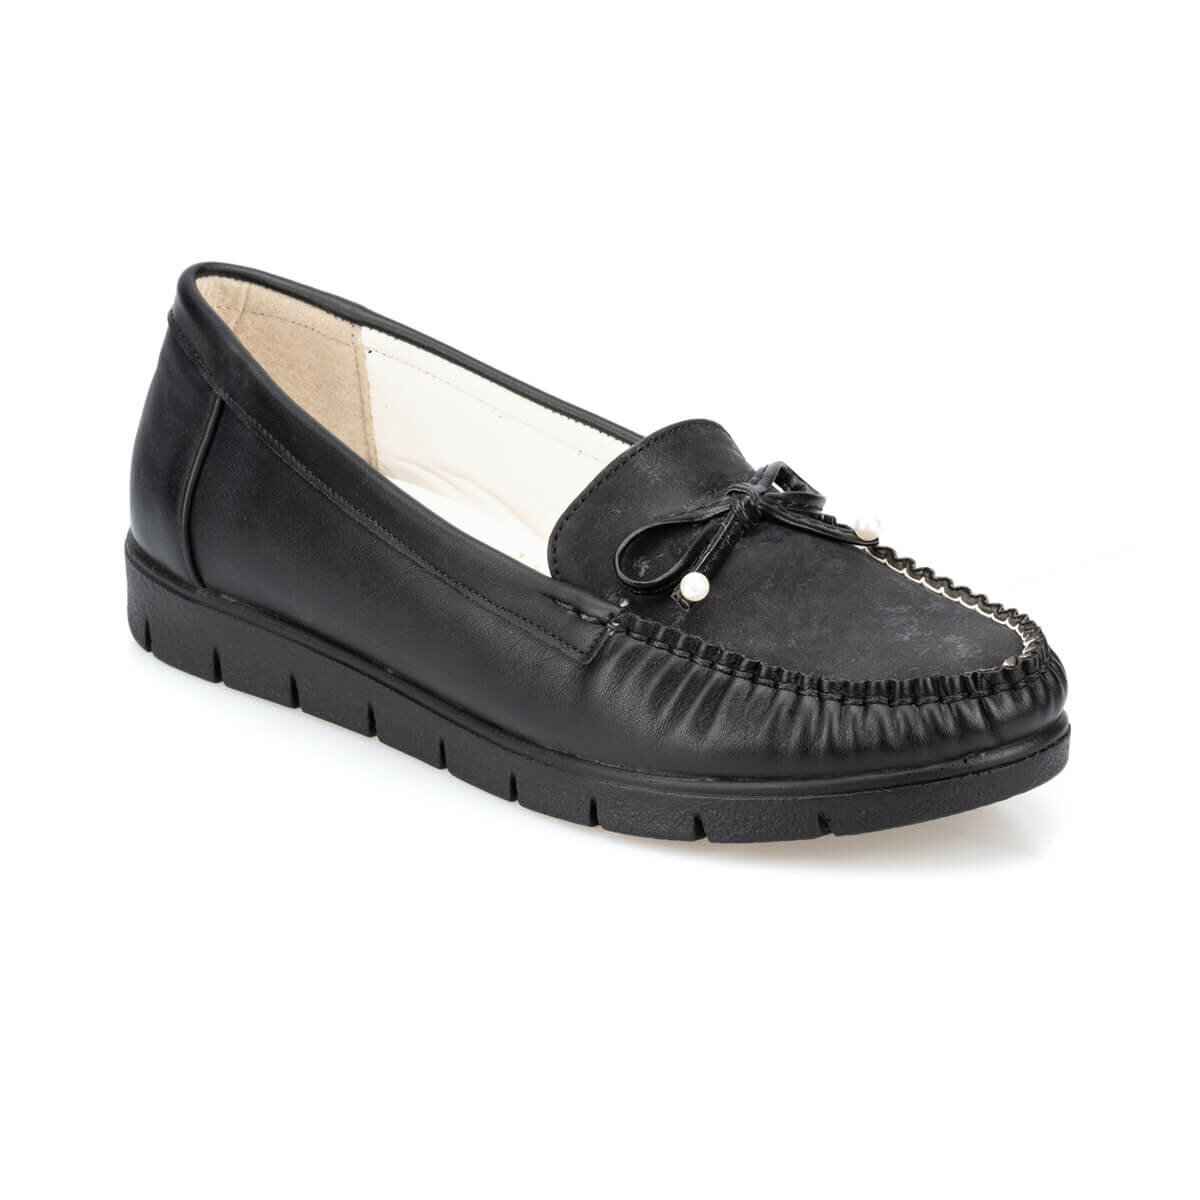 FLO 91.150658GZ Black Women Shoes Polaris